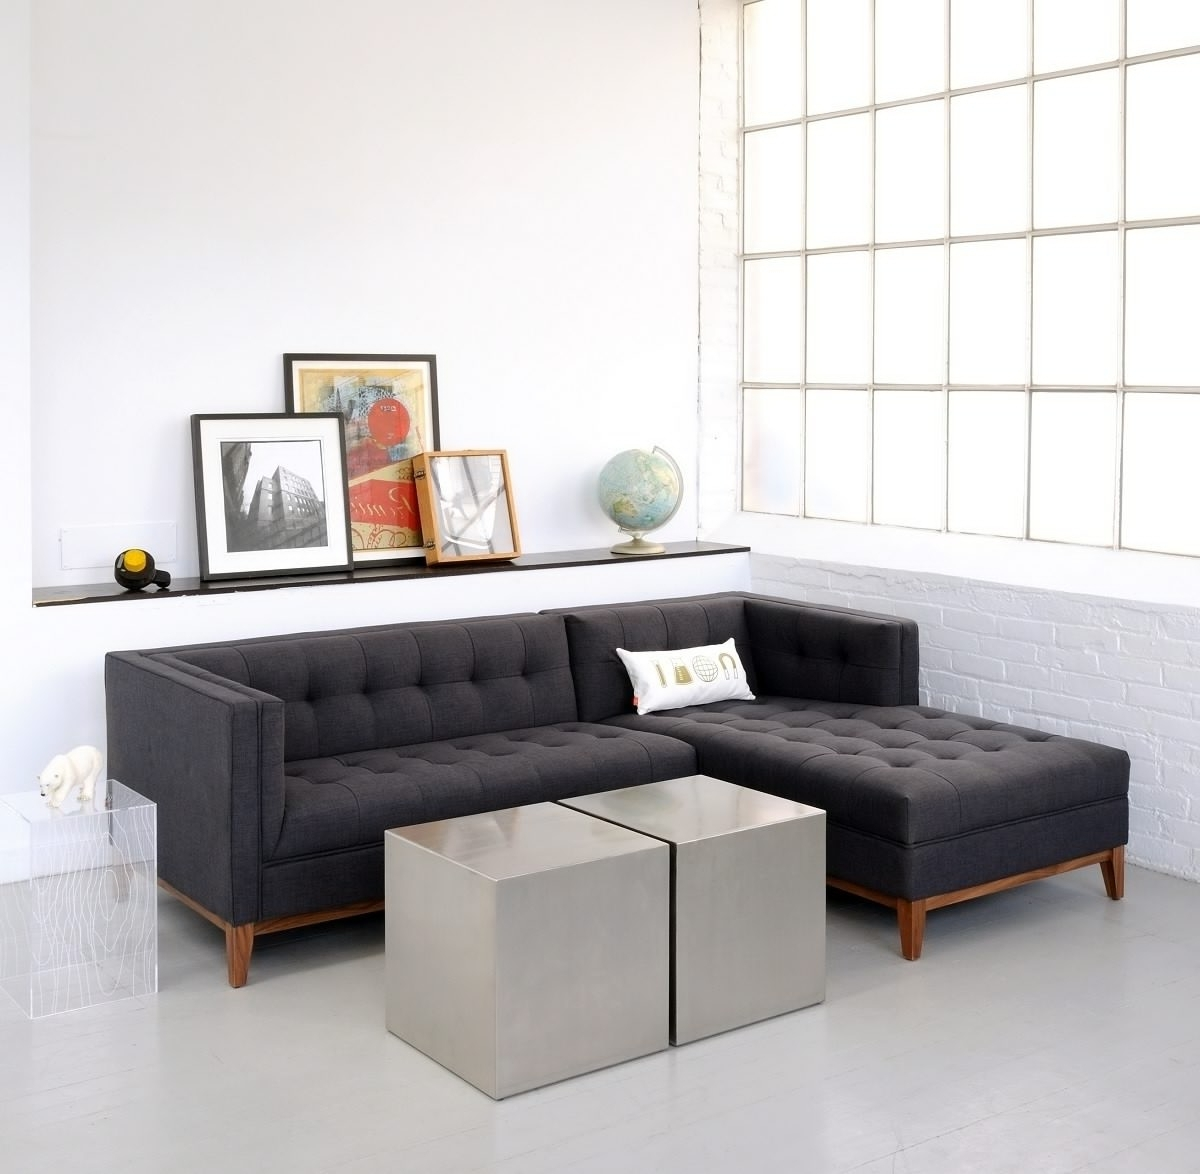 Sectional Sofas For Condos Regarding Most Popular Sectional Sofa Design: Apartment Size Sectional Sofa Bed Chaise (View 9 of 15)